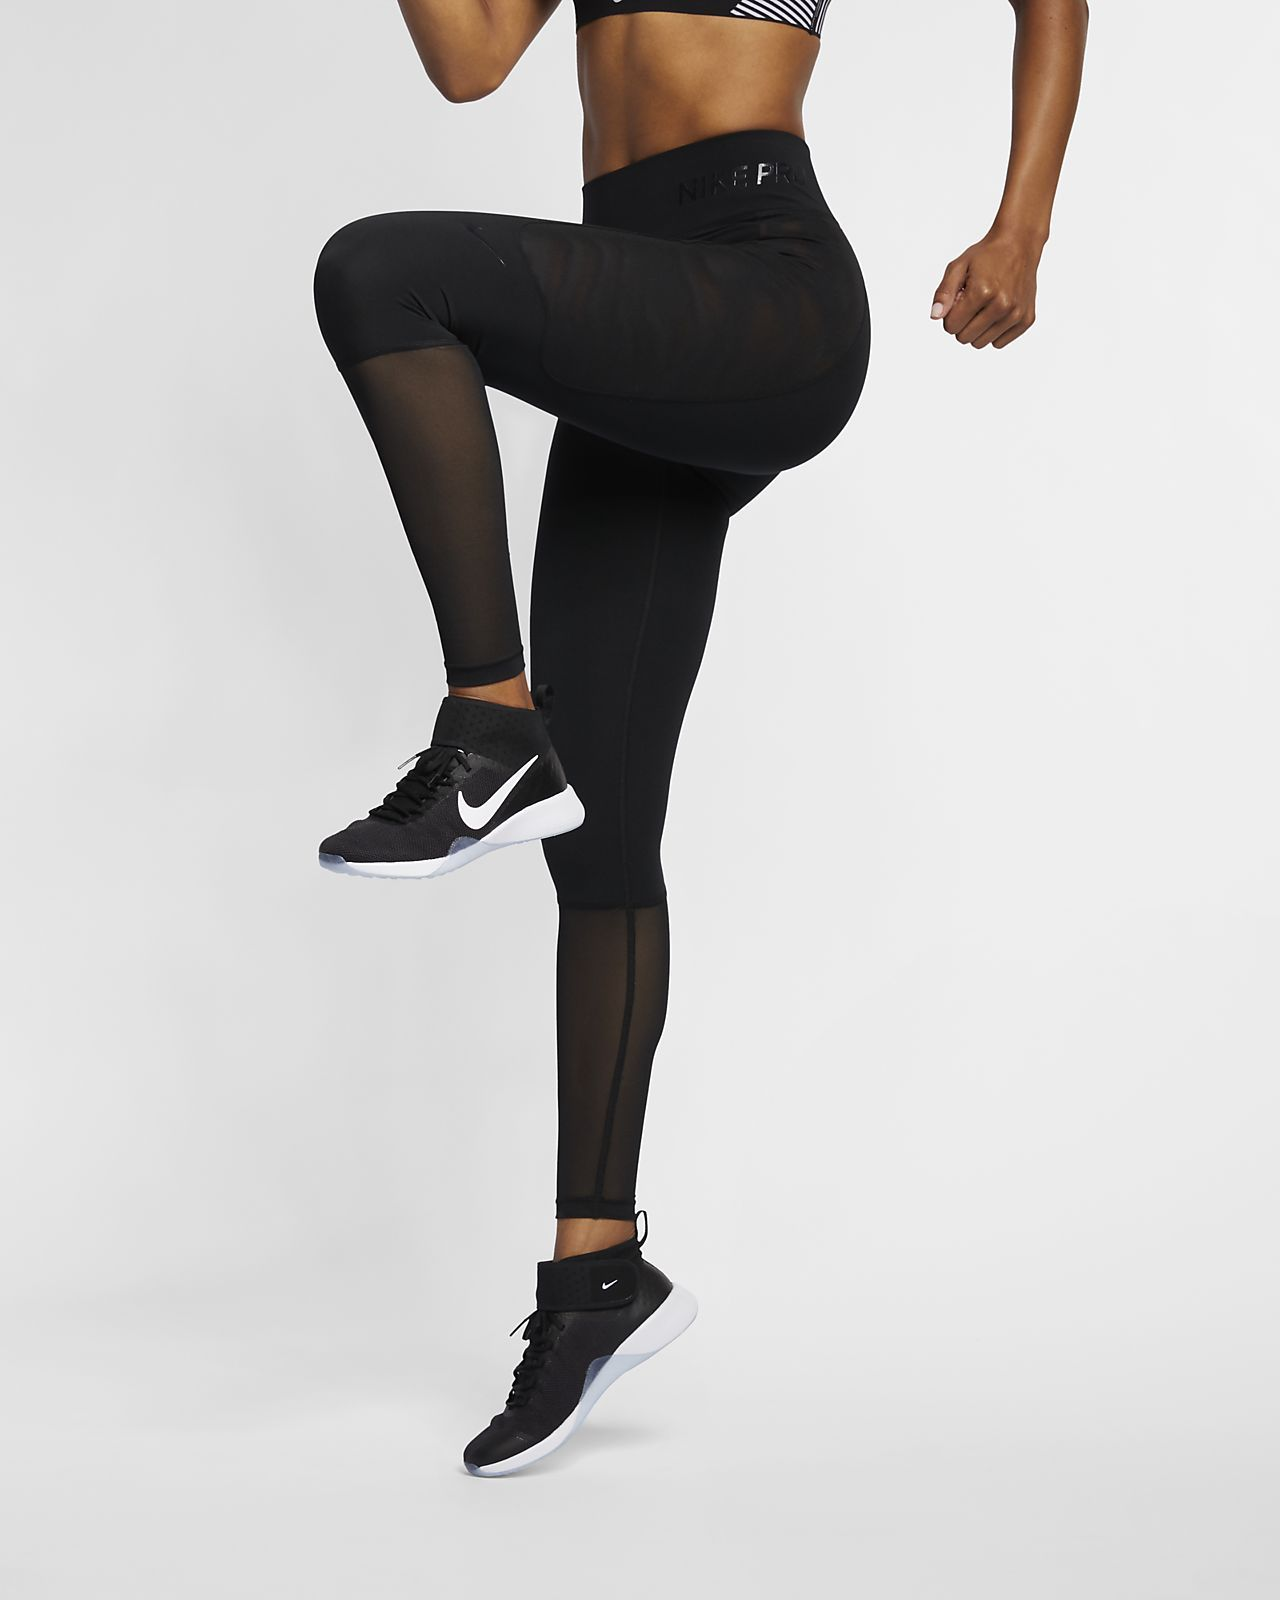 65c62caa551d3 Nike Pro Women's black workout leggings with mesh at the bottom. Cute and  athletic! #affiliate #fashion